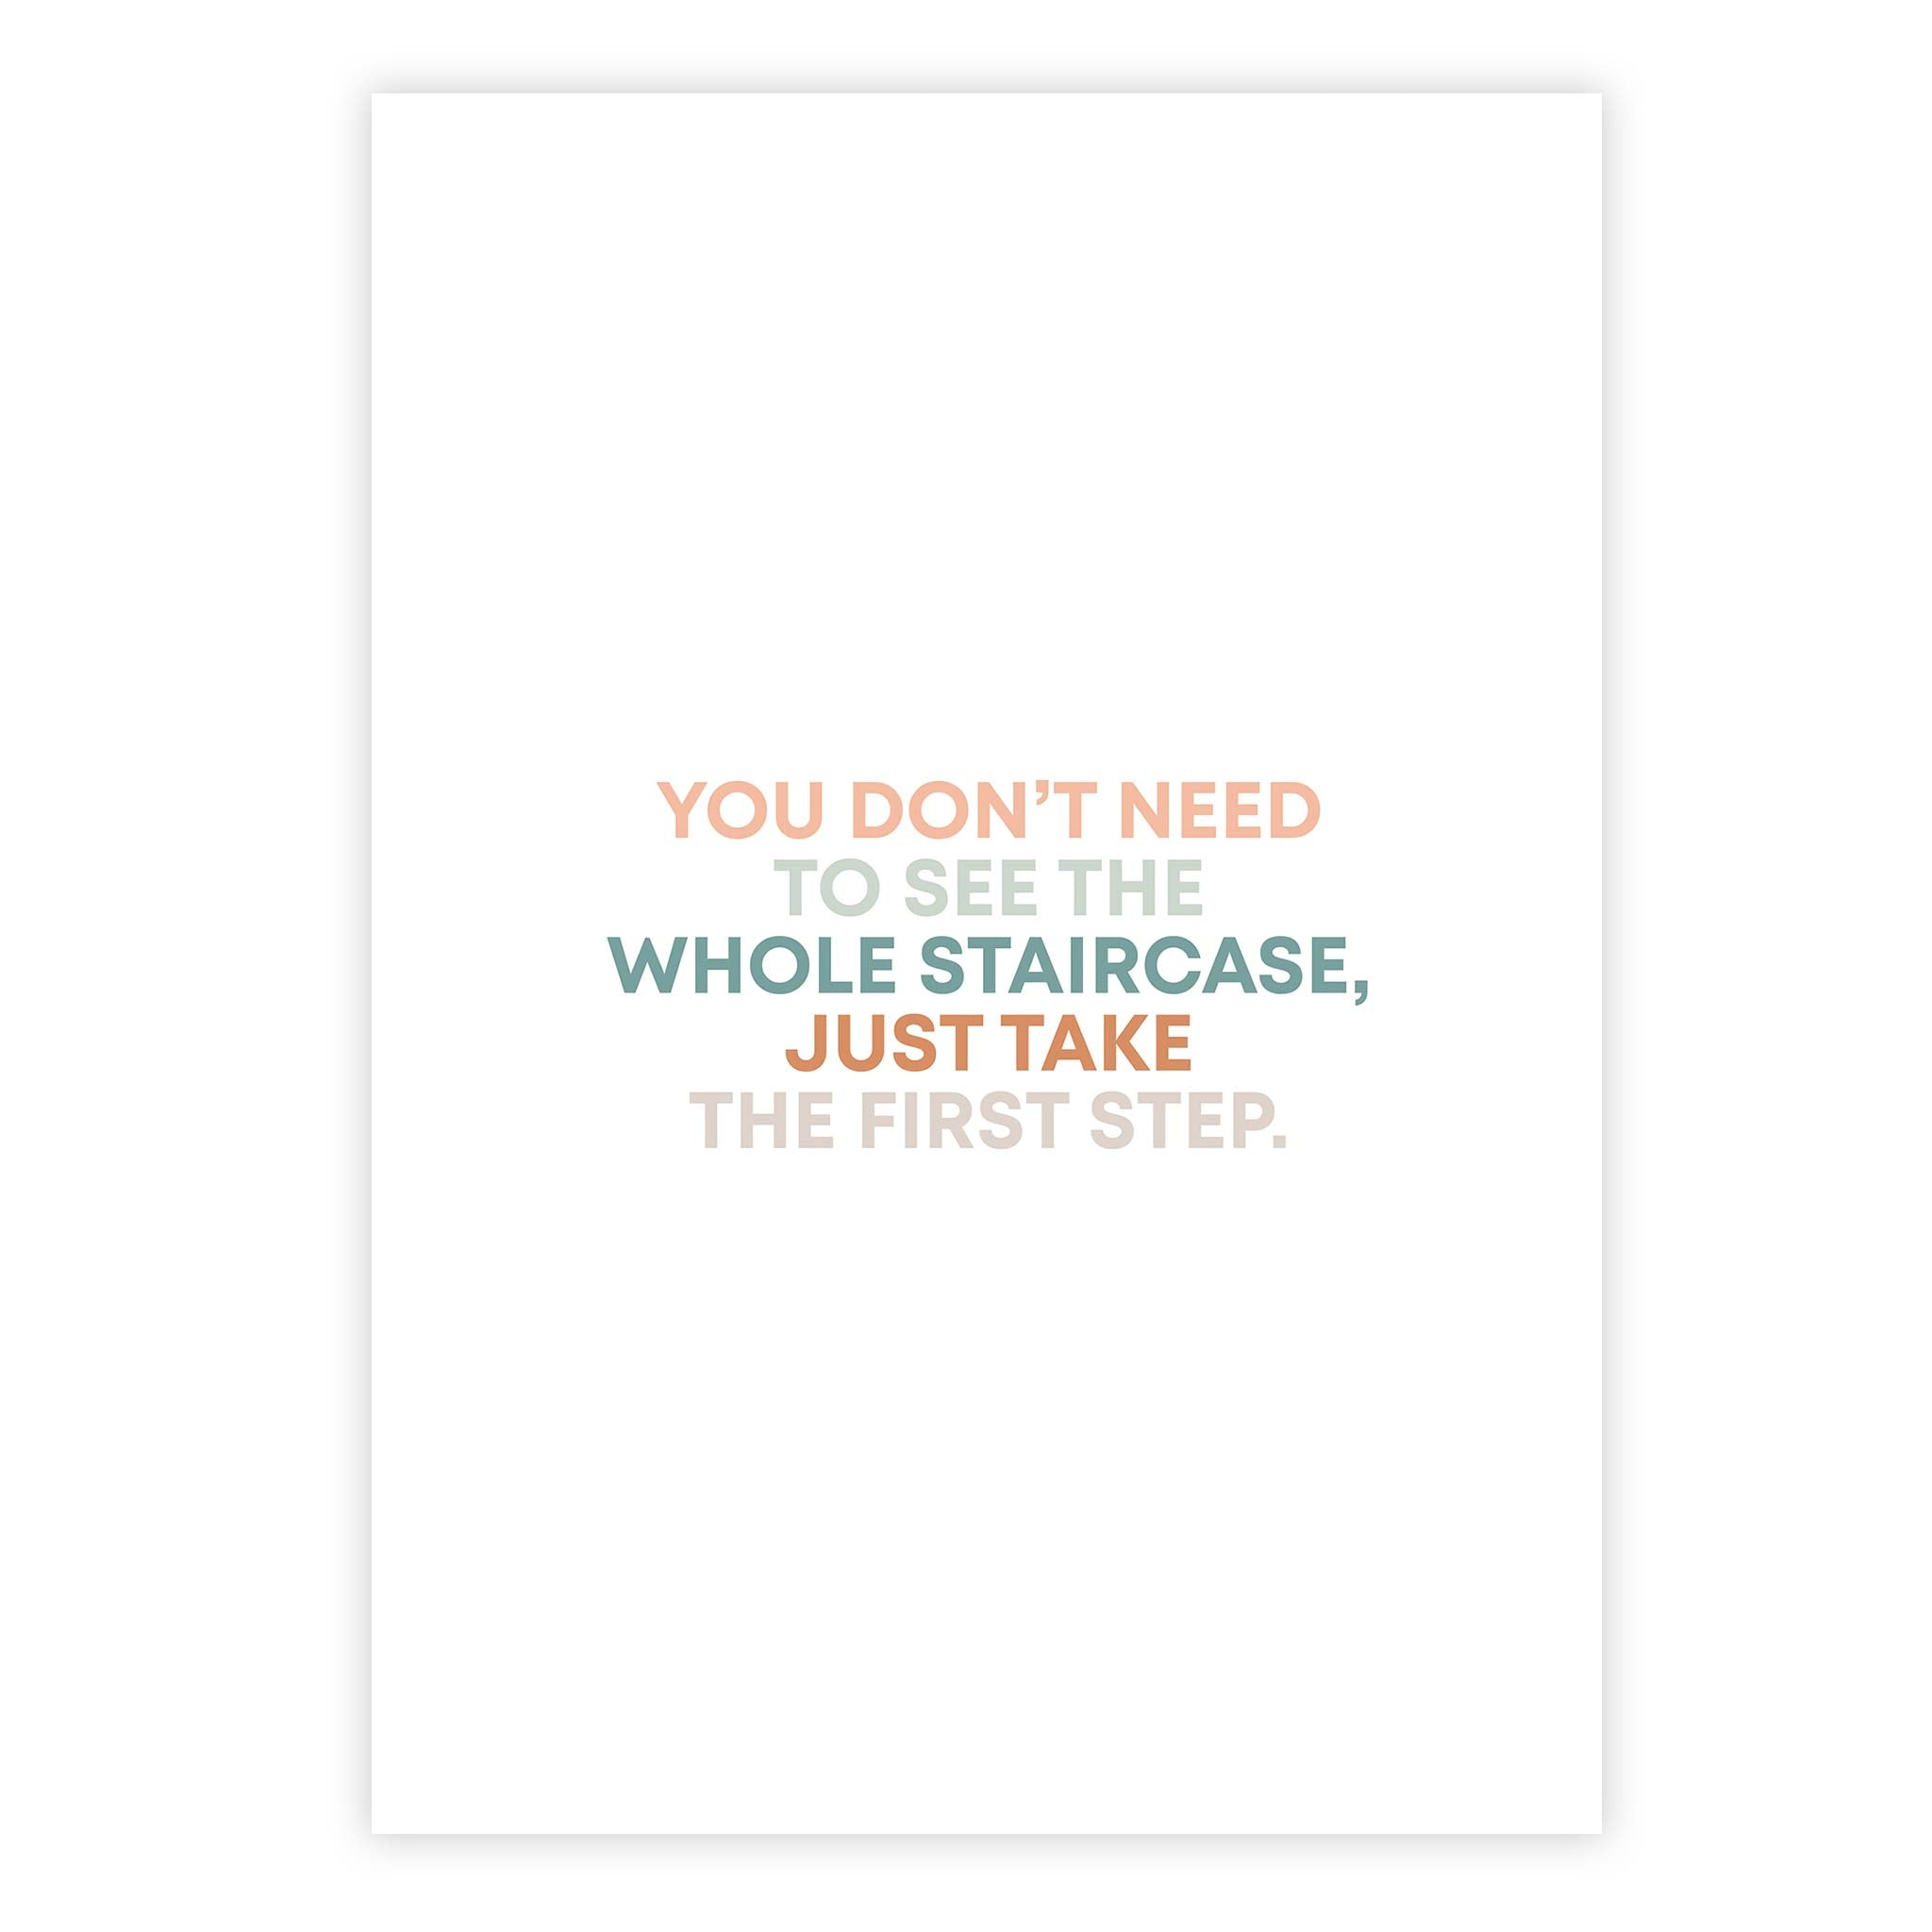 You don't need to see the whole staircase, just take the first step